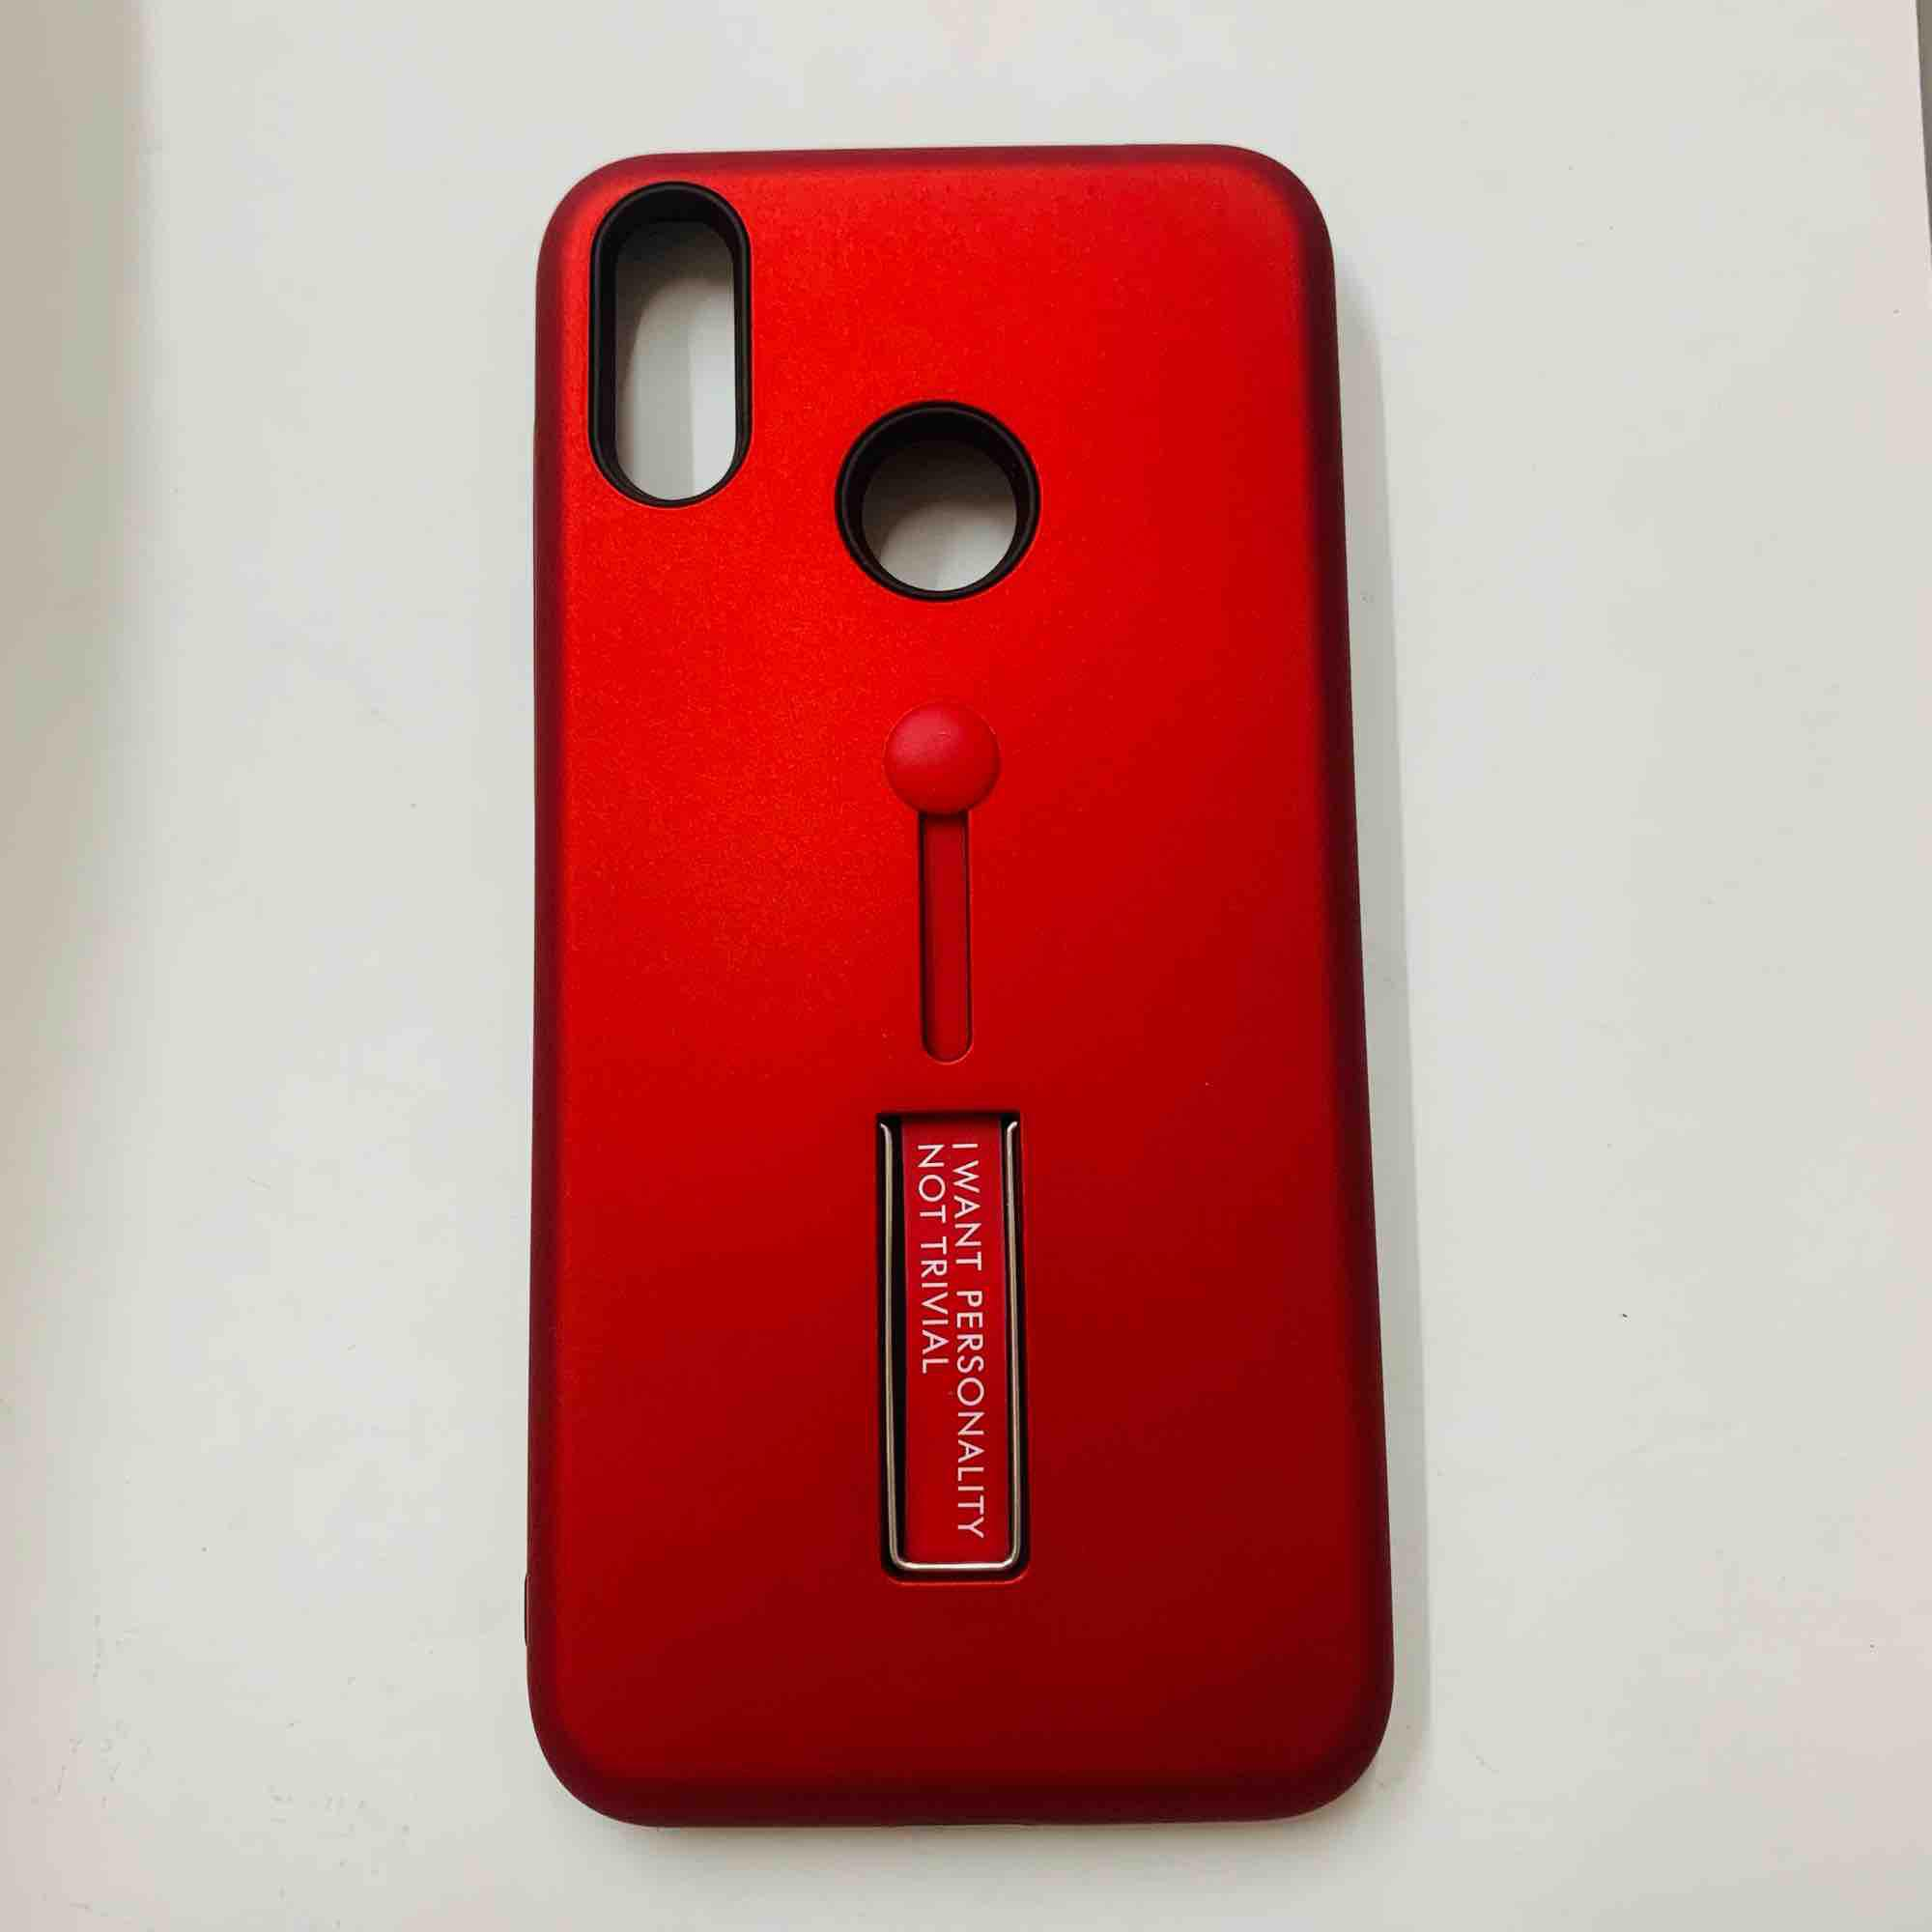 Asus zenfone max M2/ZB633KL armor case with ring stand